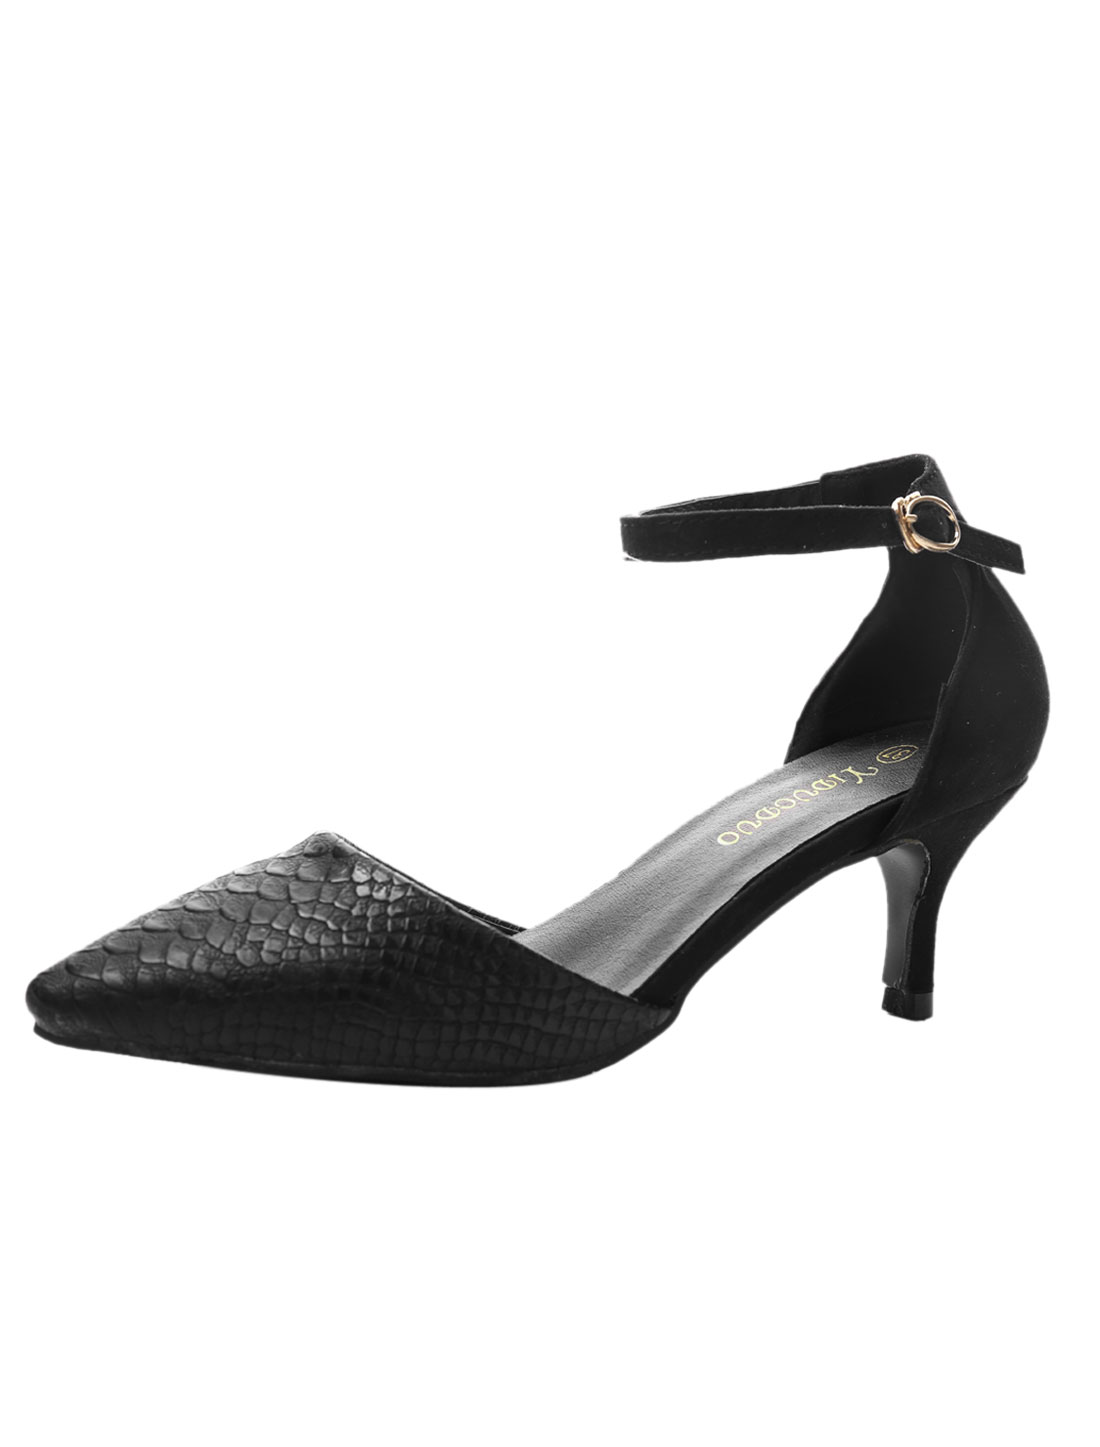 Ladies Ankle Straps Snake Effects Faux Leather Kitten Pumps Black US 7